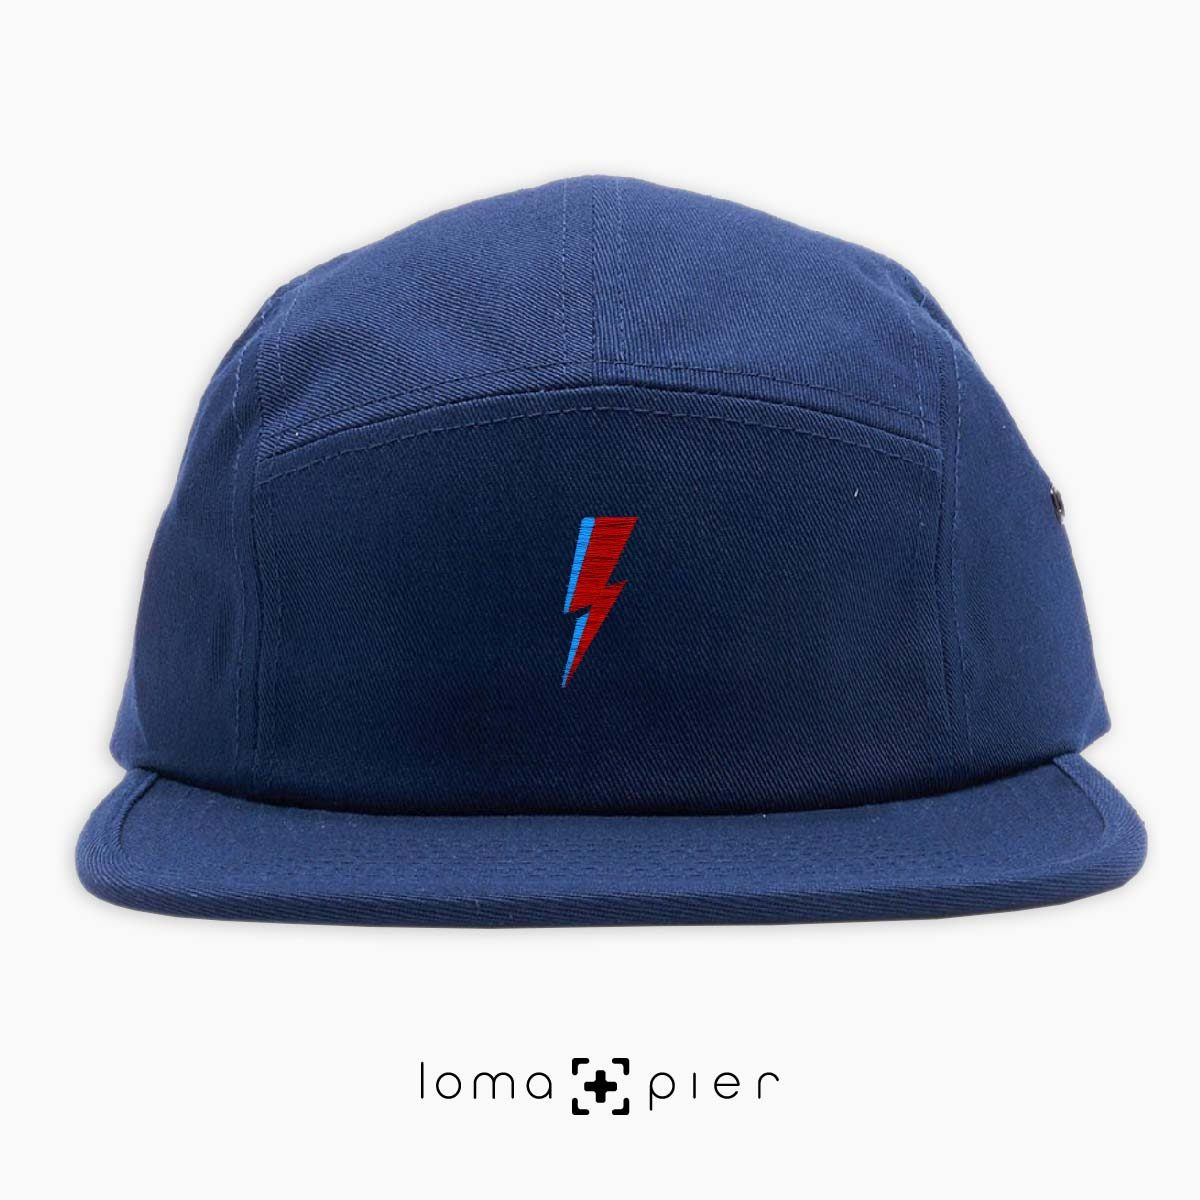 LIGHTNING BOLT icon embroidered on a navy blue cotton 5-panel hat with multicolor thread by loma+pier hat store